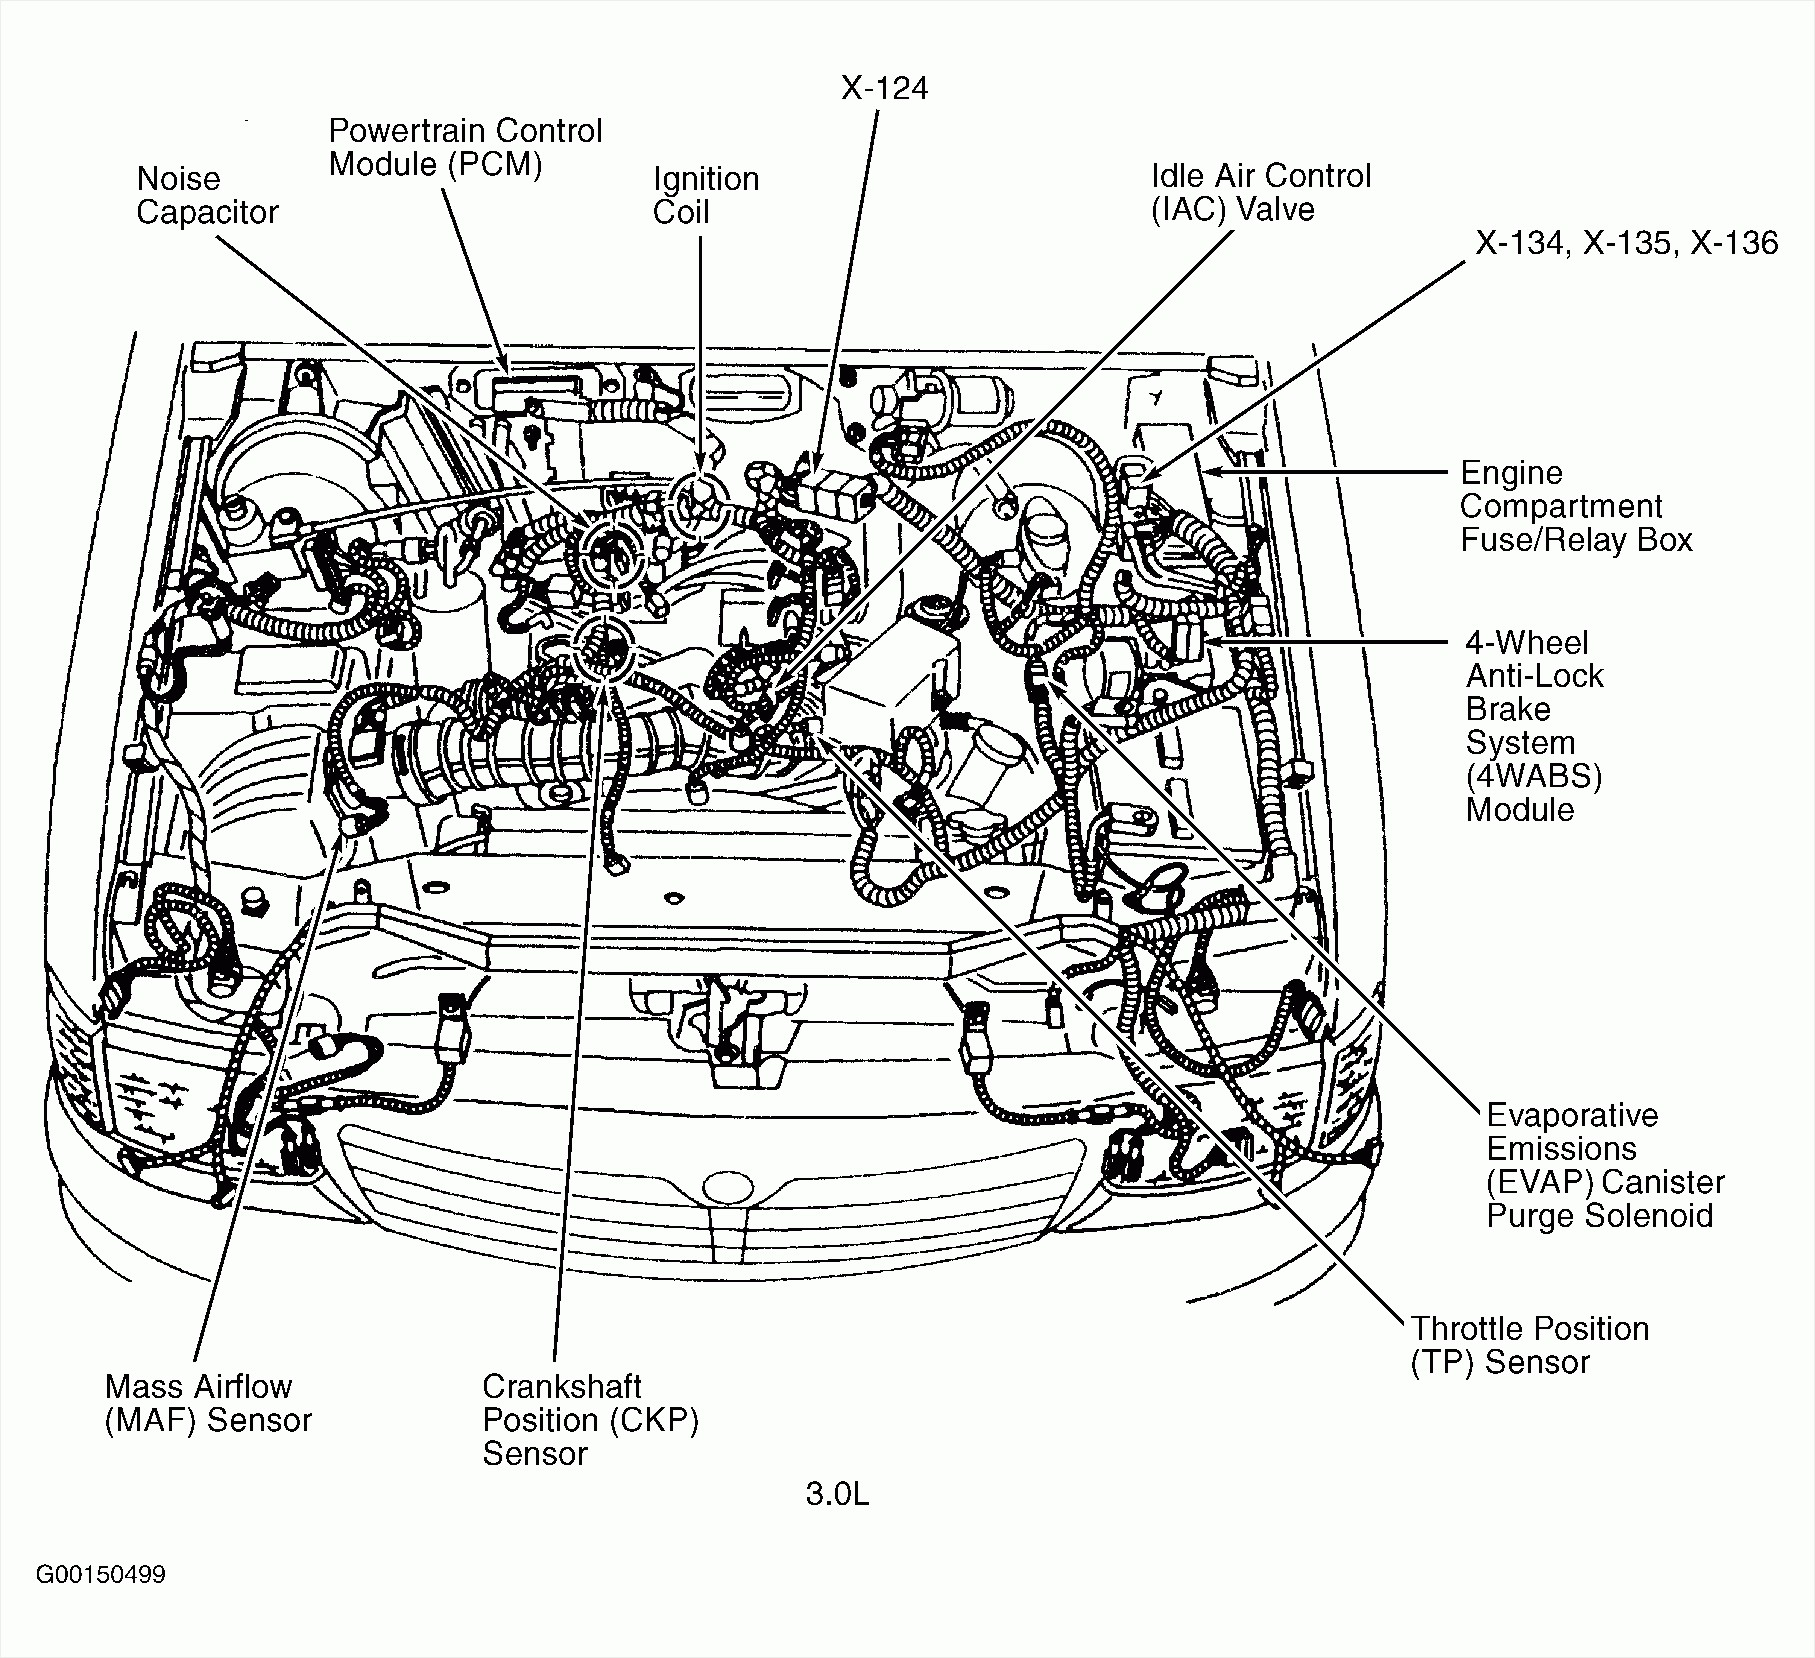 hight resolution of 2004 cavalier engine diagram share circuit diagrams 2004 chevy impala 3 8 engine diagram 2004 chevrolet cavalier